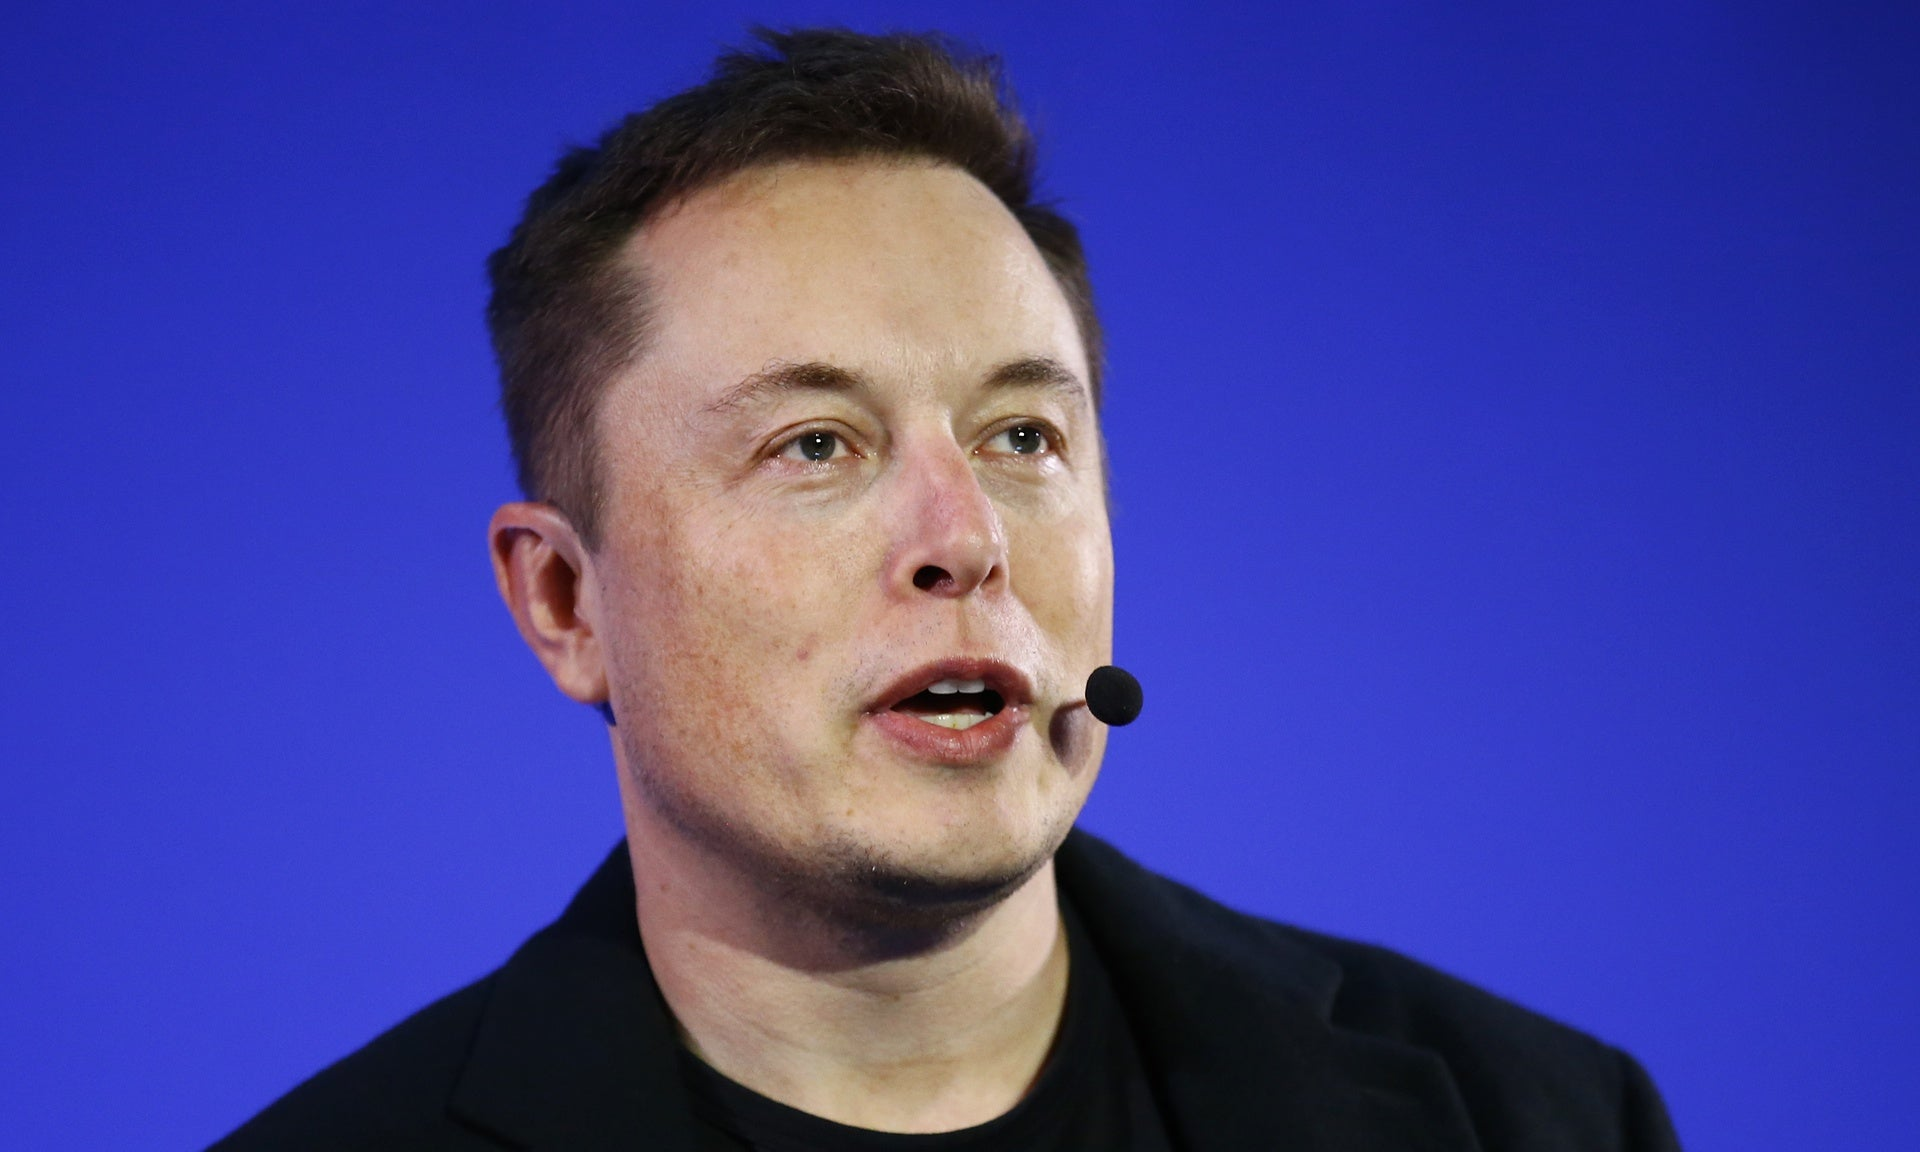 Tesla's Elon Musk named co-chair for non-profit firm researching artificial